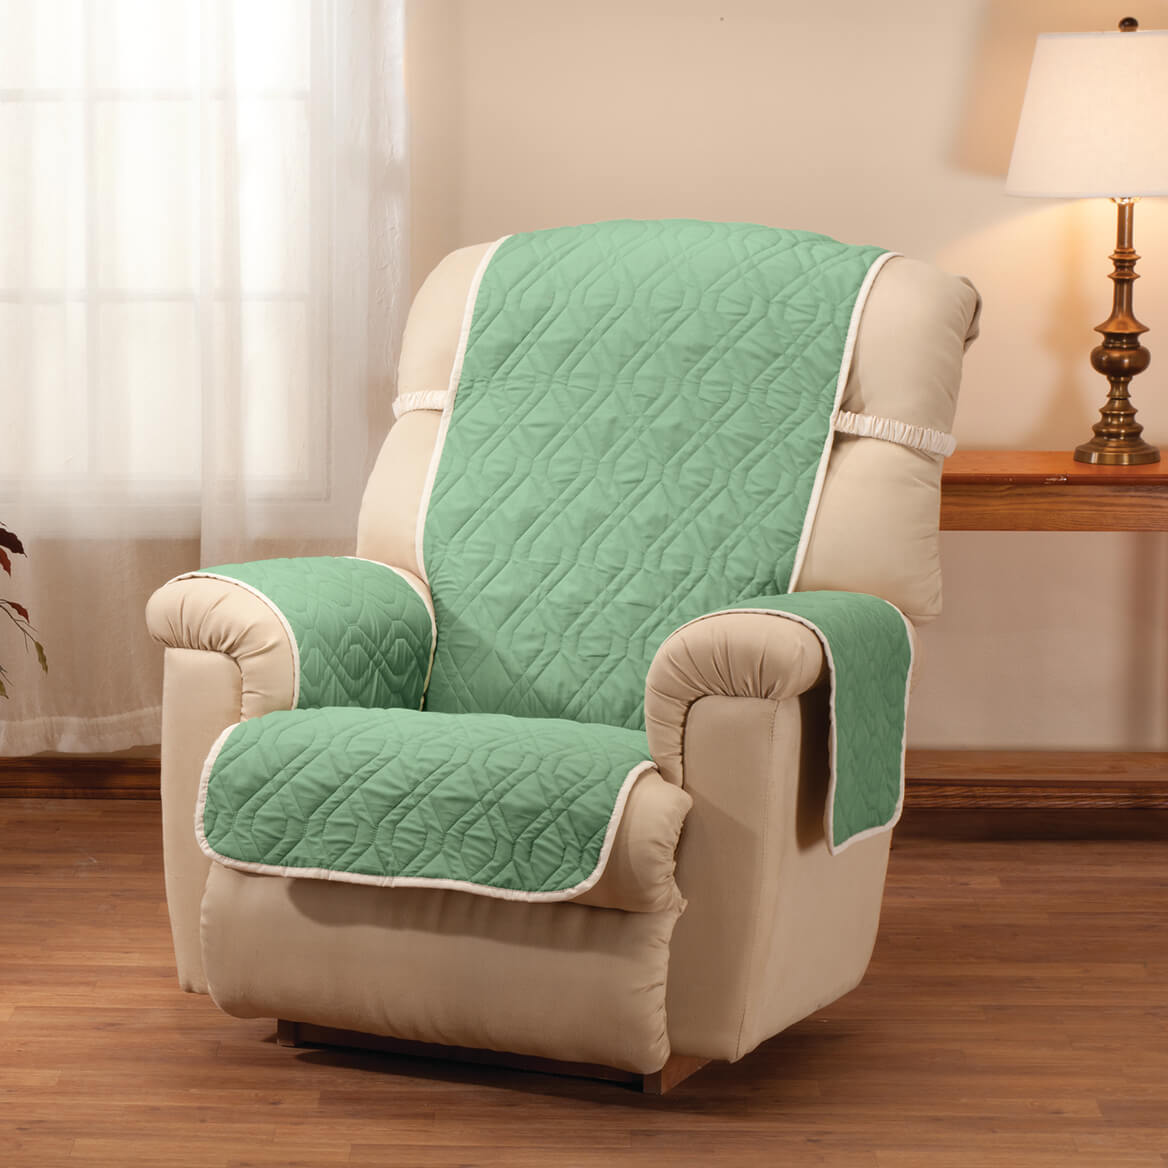 chair covers to buy louis xiv deluxe reversible waterproof recliner cover miles